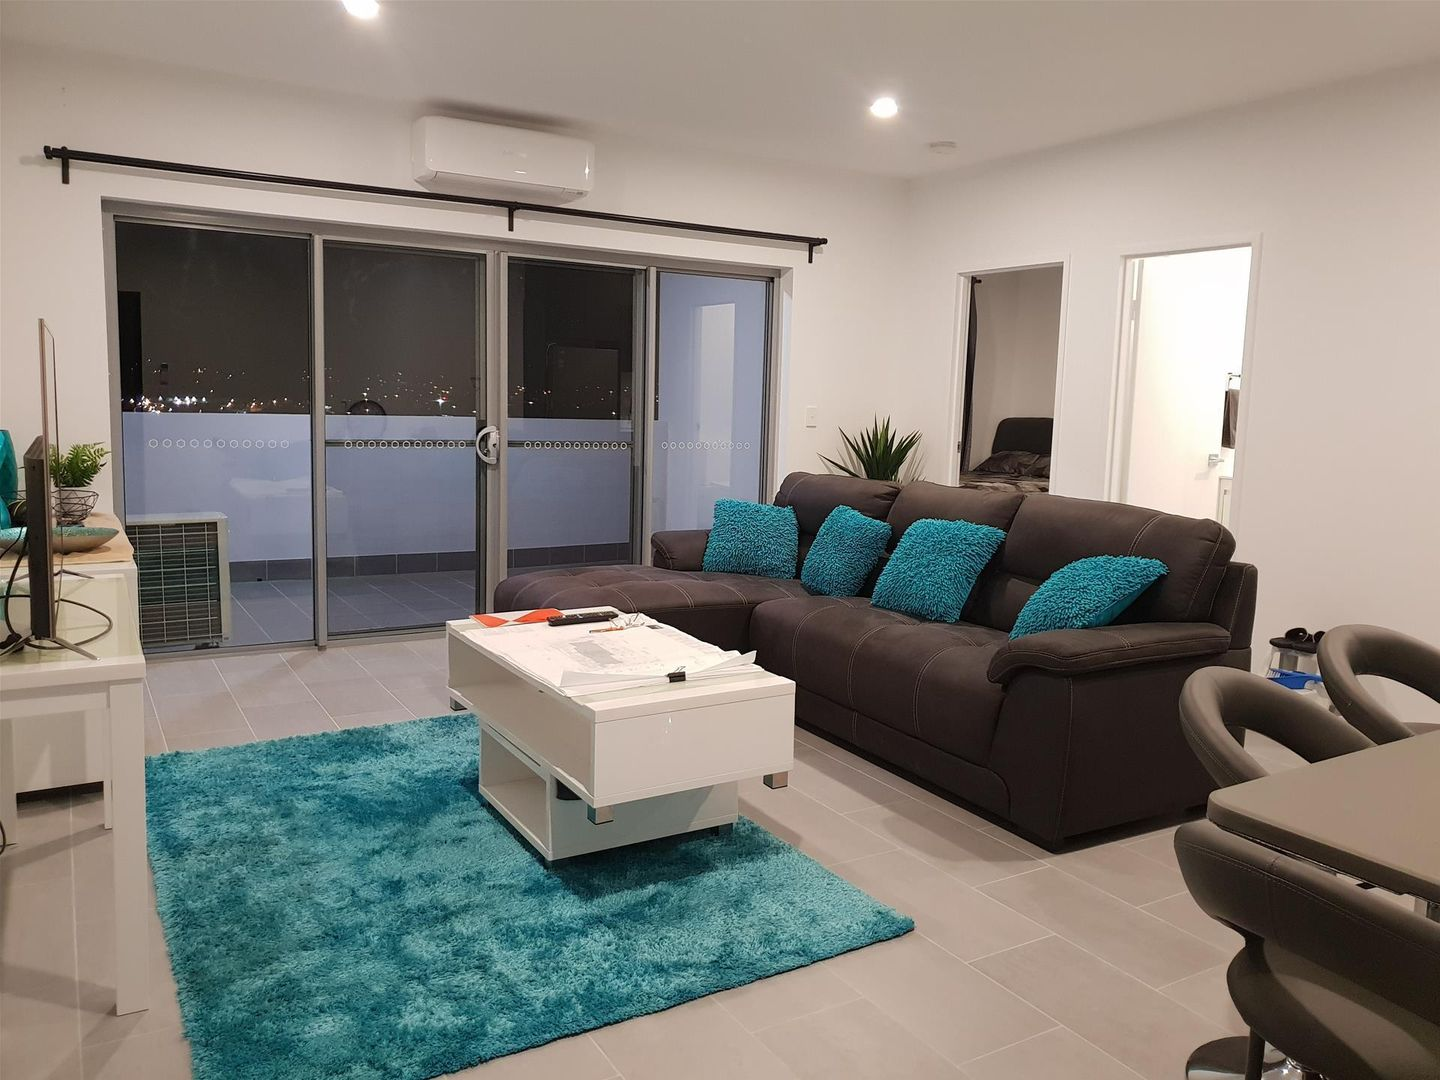 14/14 City Road, Beenleigh QLD 4207, Image 0